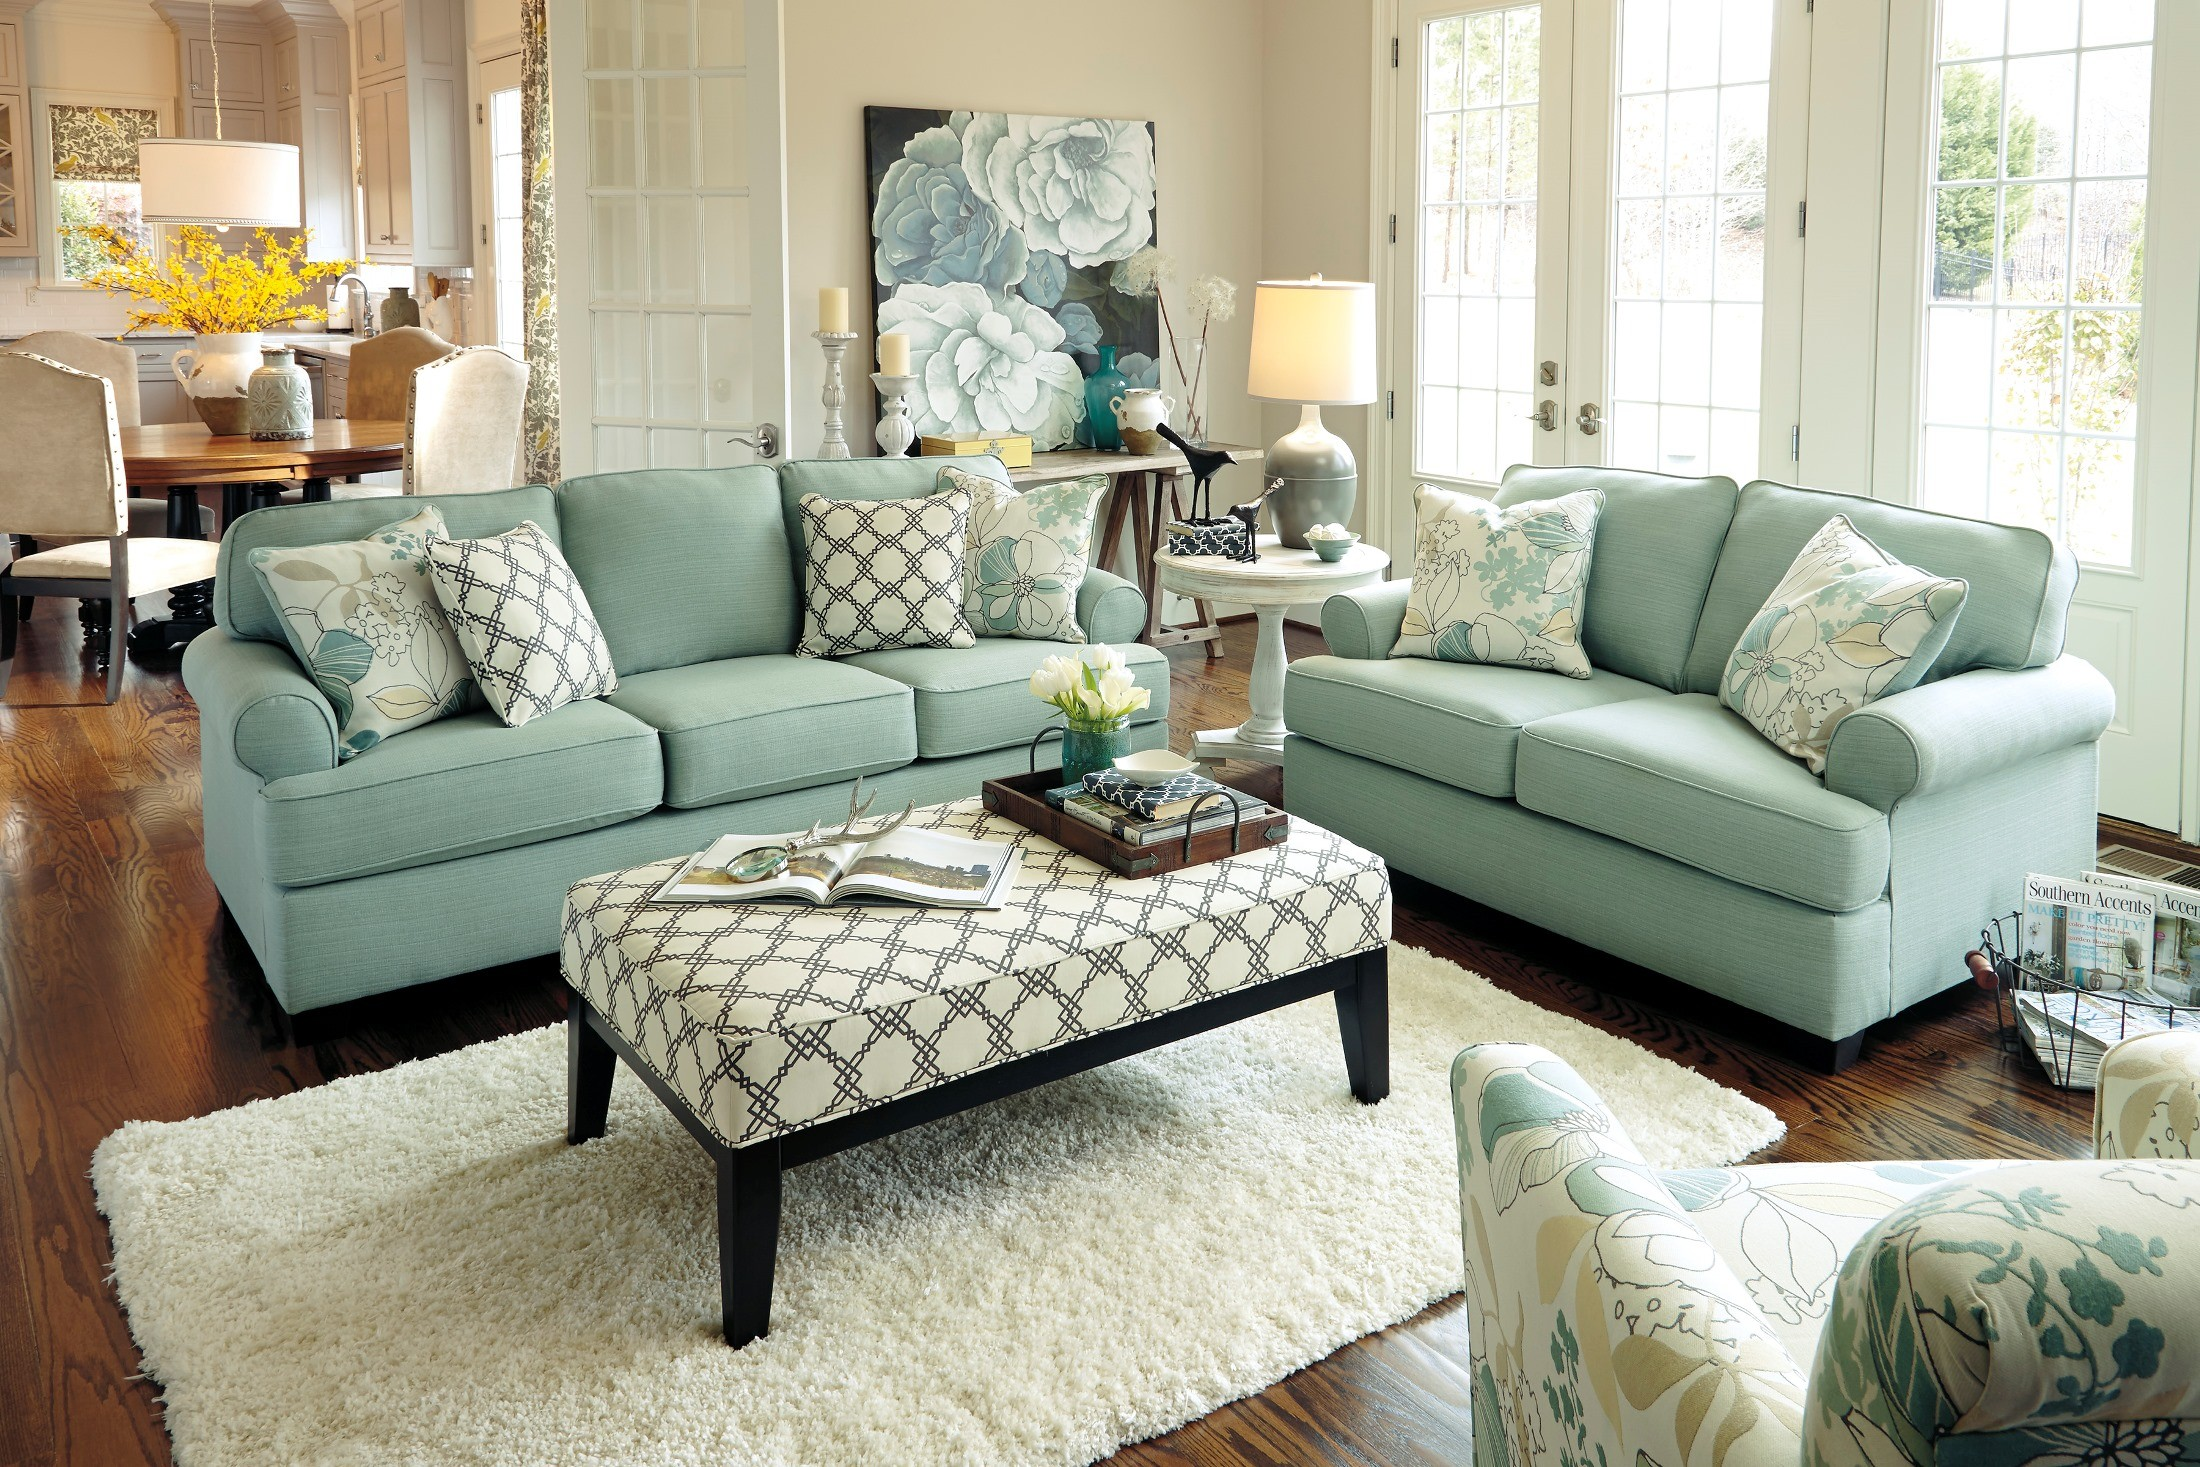 Awesome Daystar Loveseat From Ashley 2820035 Coleman Furniture . Kylee Lagoon  Living Room ... Part 15